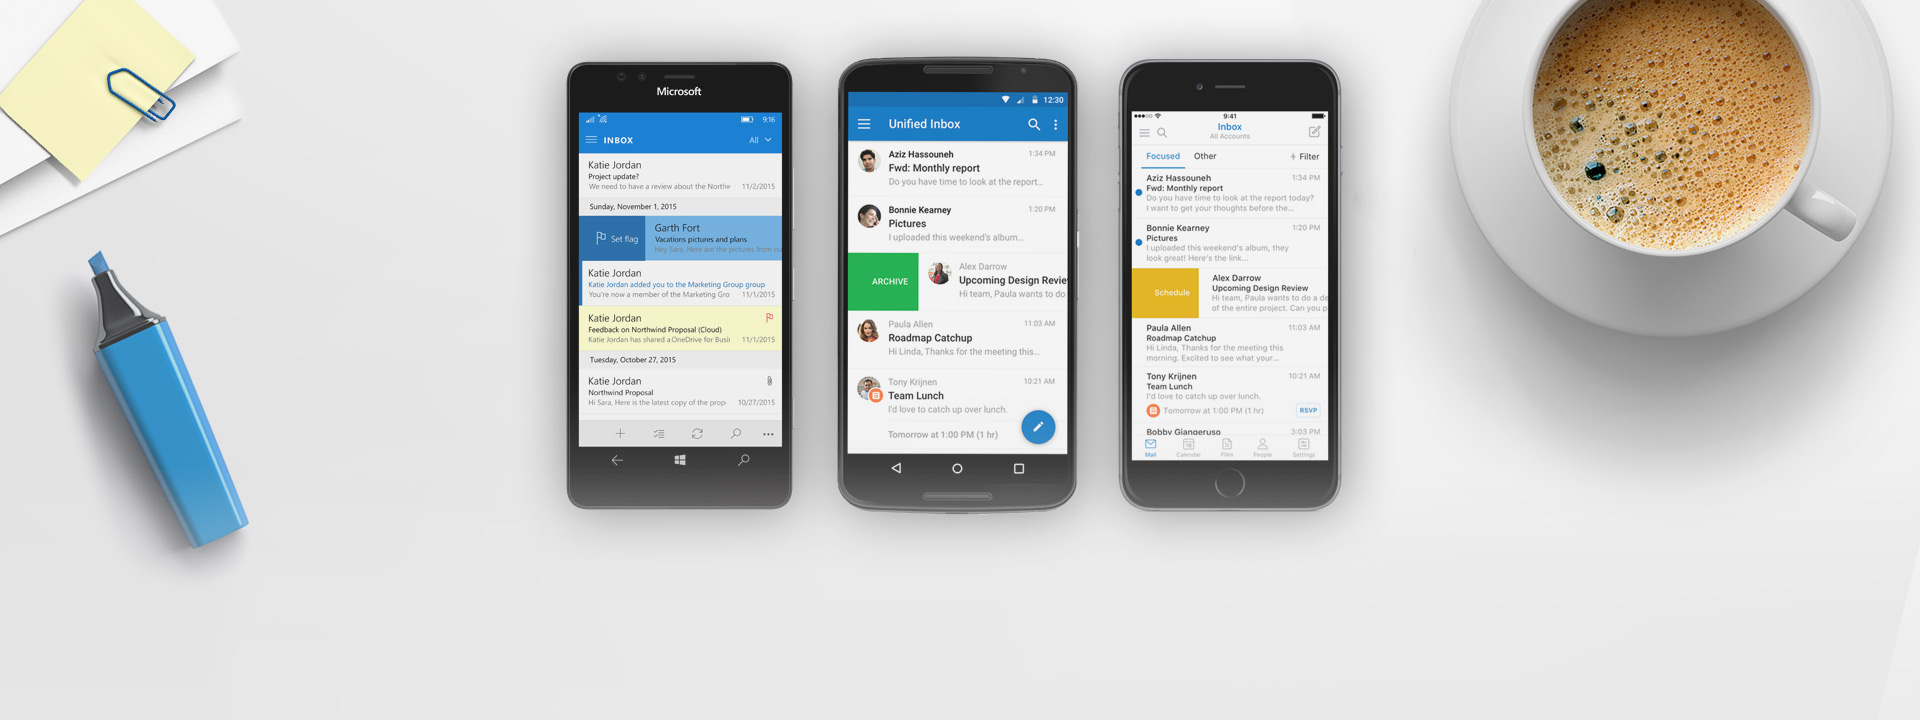 Windows Phone, iPhone and Android phone with Outlook app on the screens